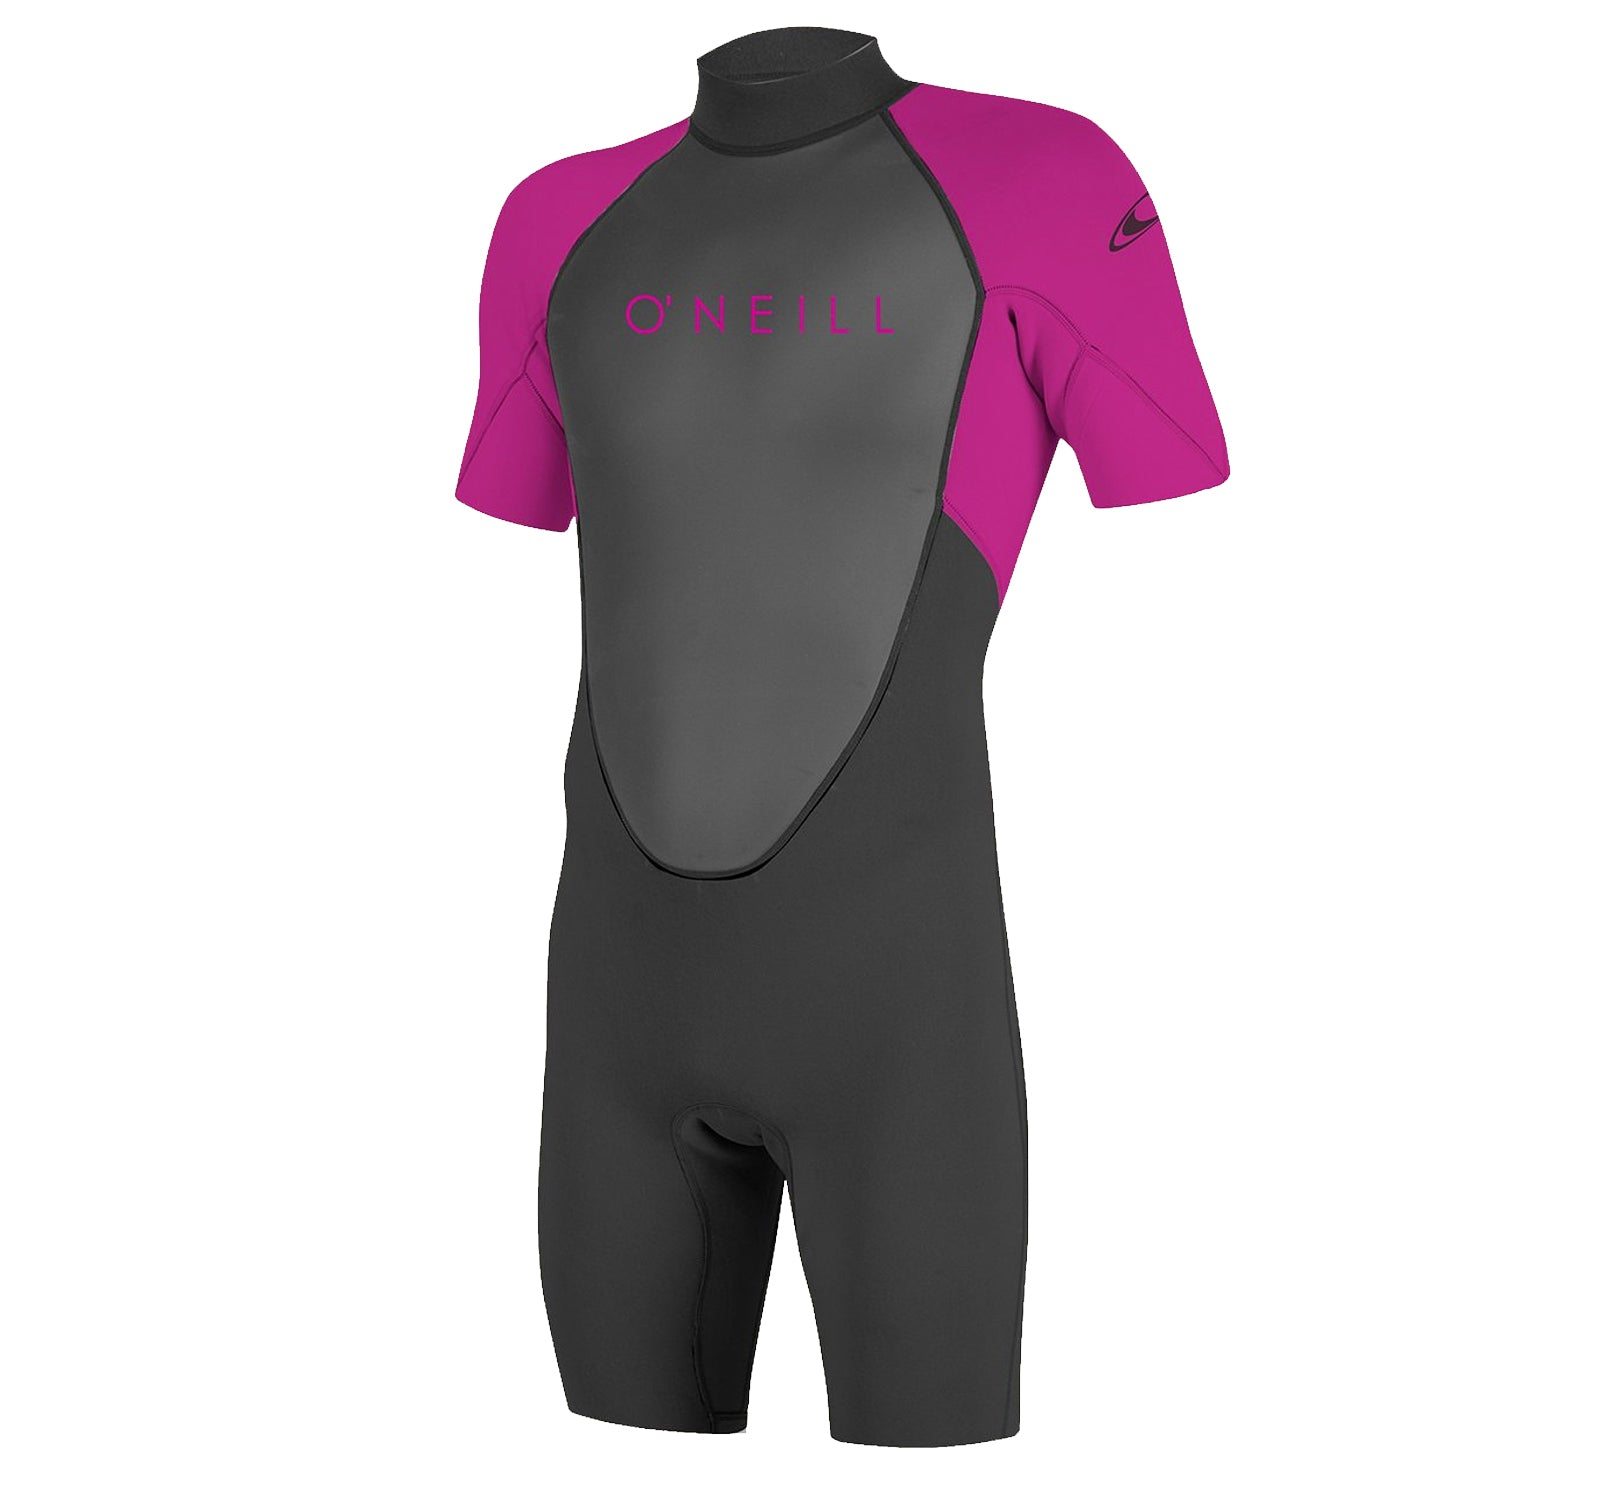 O'Neill Reactor 2mm Youth Back Zip Springsuit Wetsuit